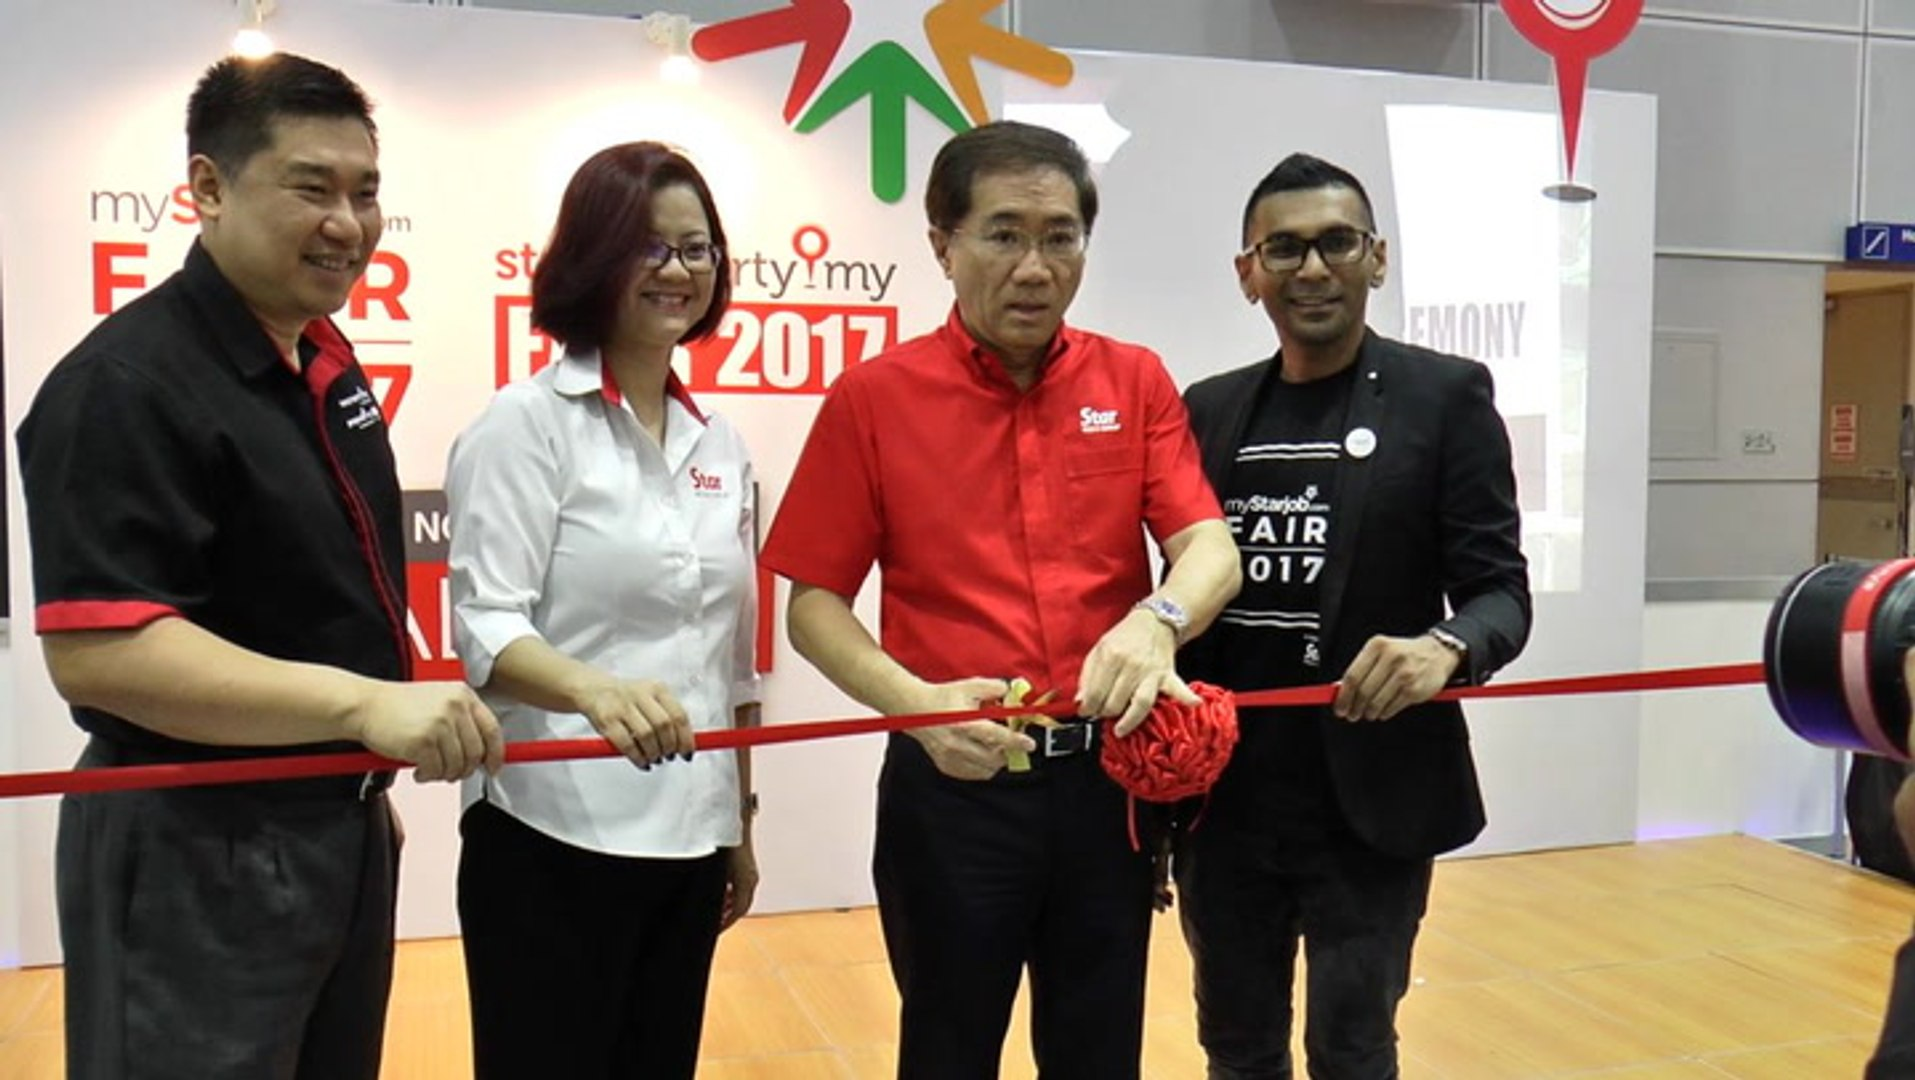 Unique career and property fair held at KLCC